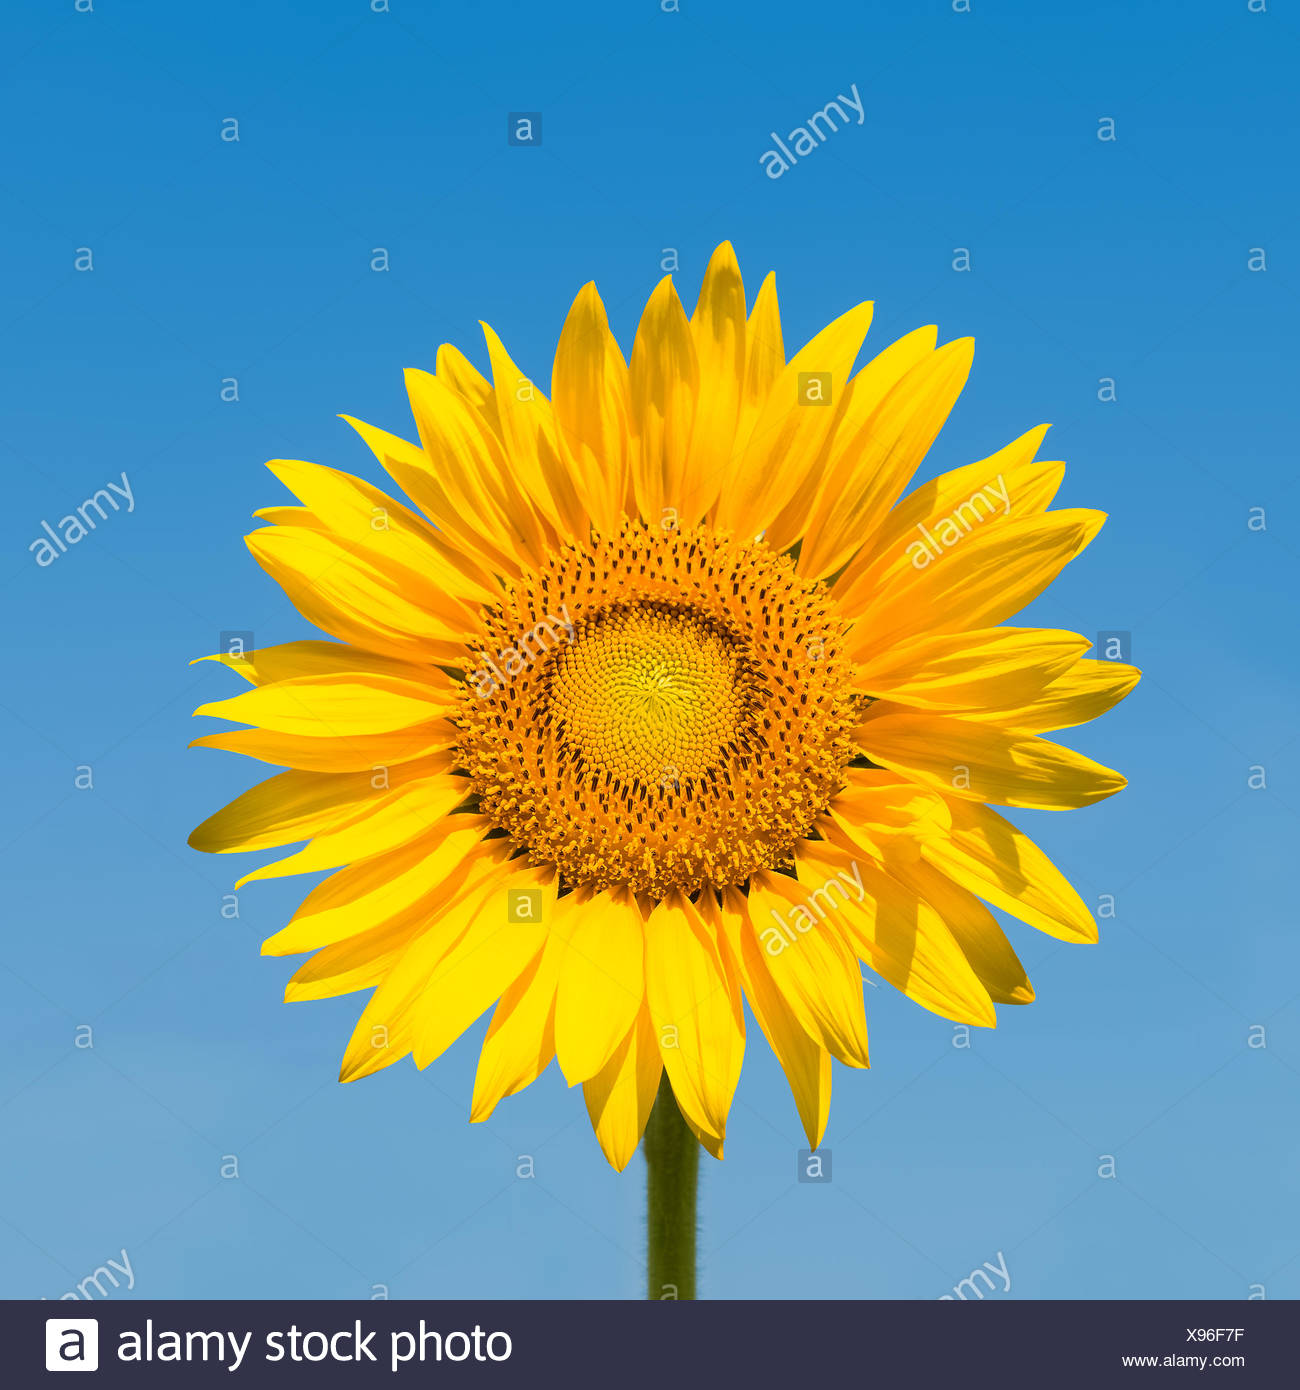 sunflower isolated with clipping path - Stock Image